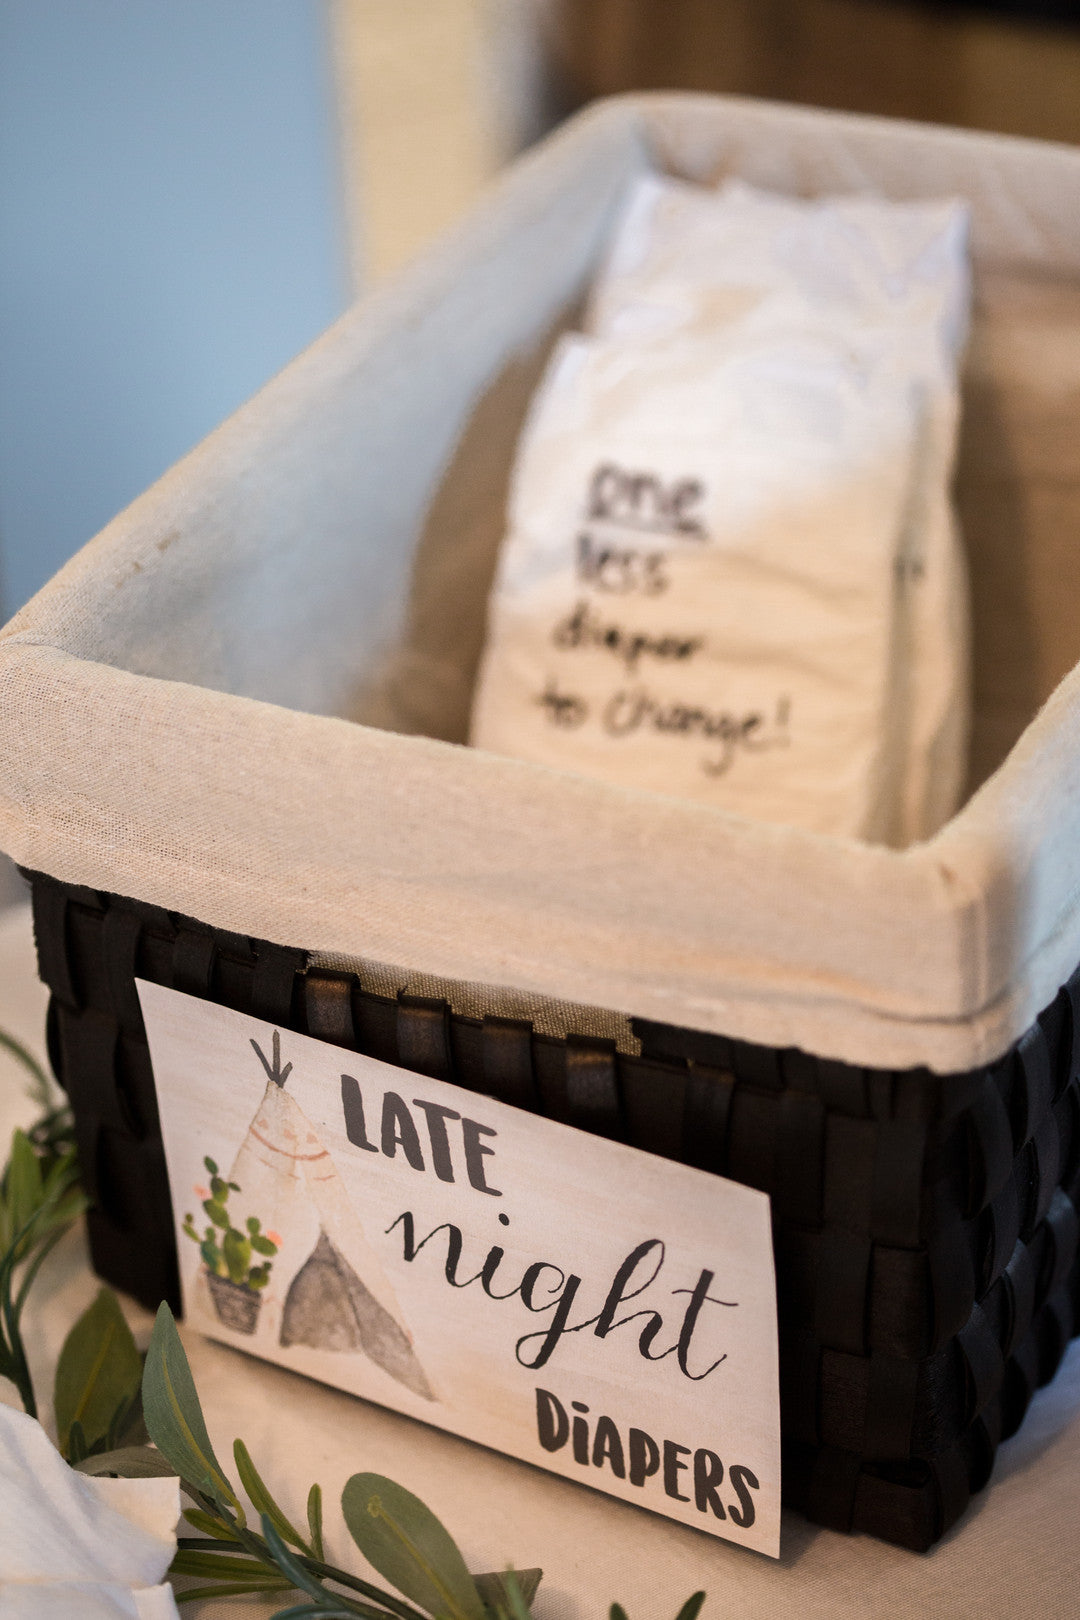 Late Night Diapers Basket | A Chic Desert Themed Baby Shower | Kate Aspen